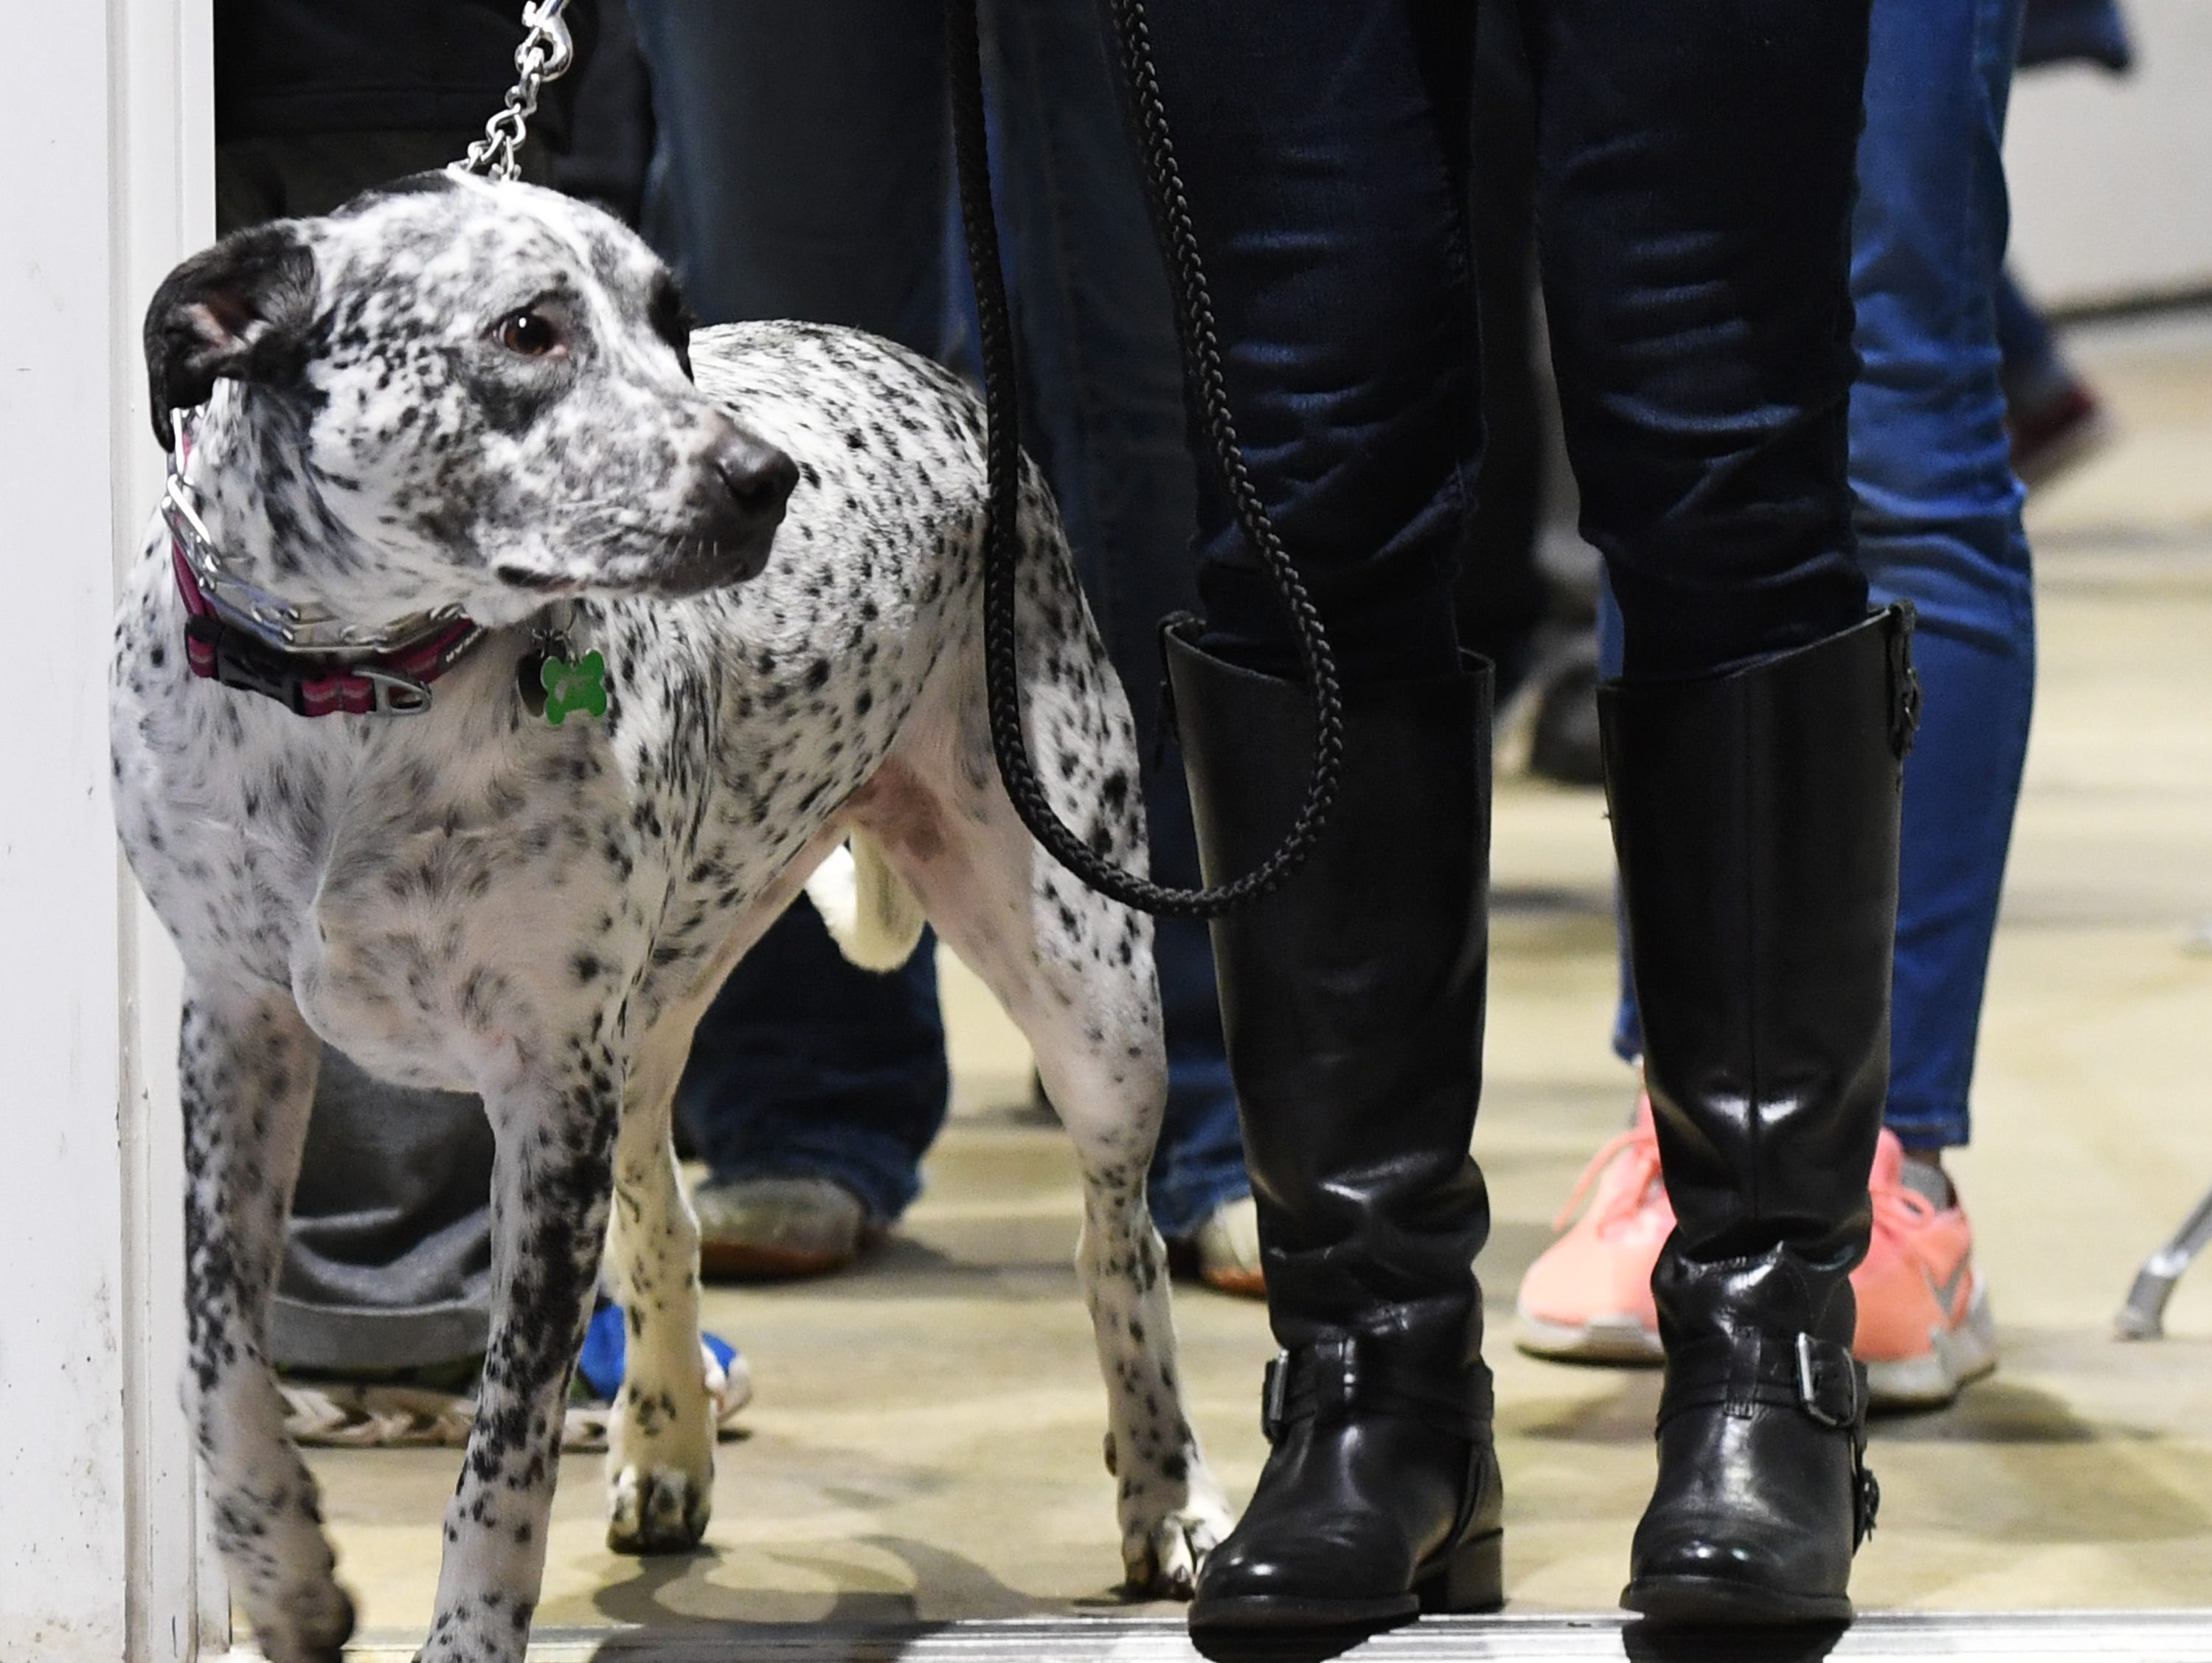 Madison McCartney walks her dog, Cali, into Bon Secours Wellness Arena for Pucks N' Paws night during the Greenville Swamp Rabbits game against the Florida Everblades Saturday, Feb. 2, 2019.